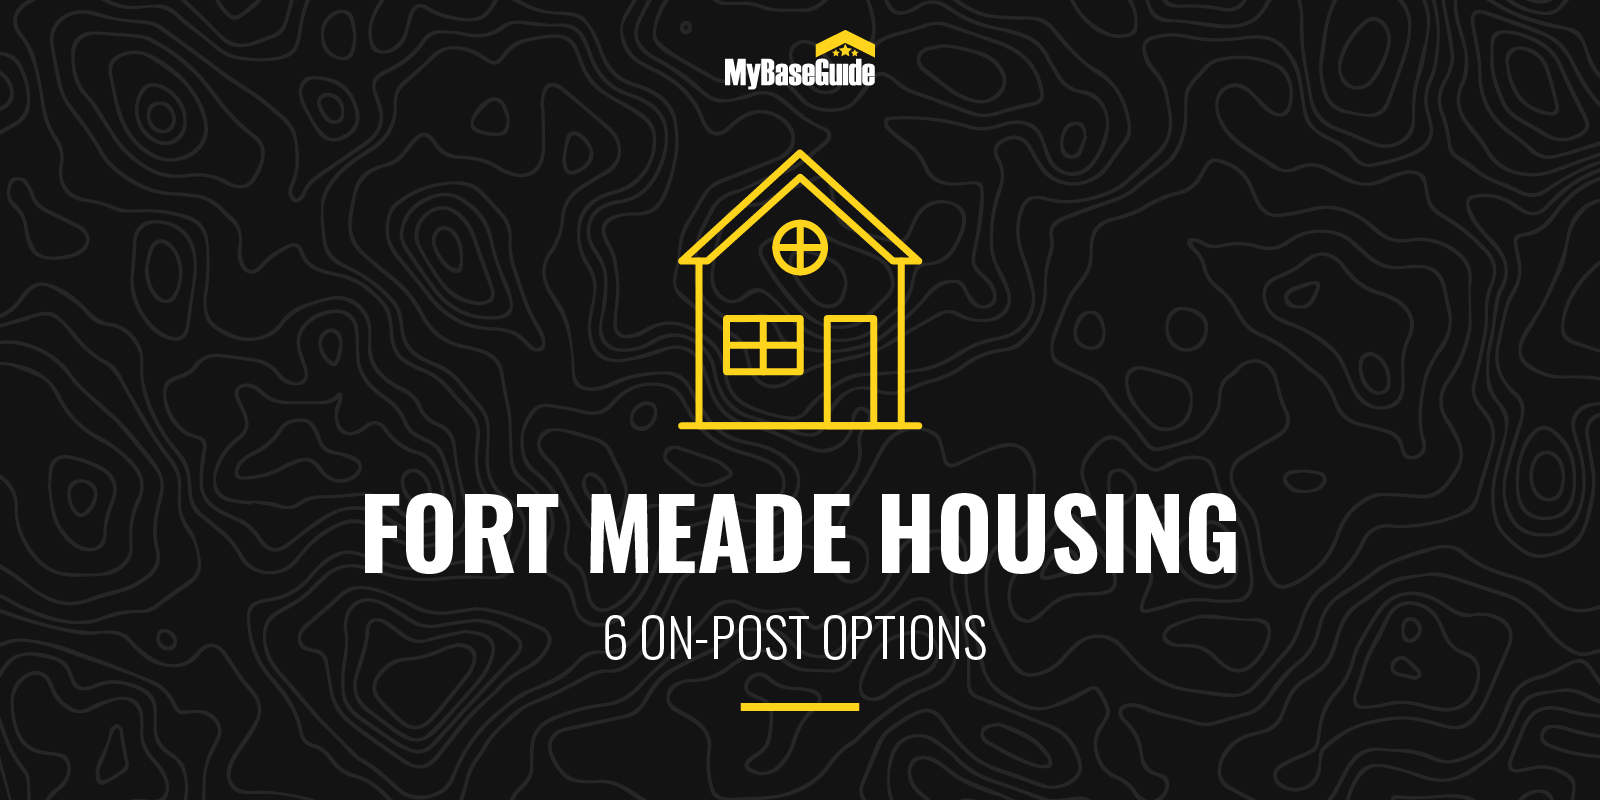 Fort Meade Housing: 6 On Post Options